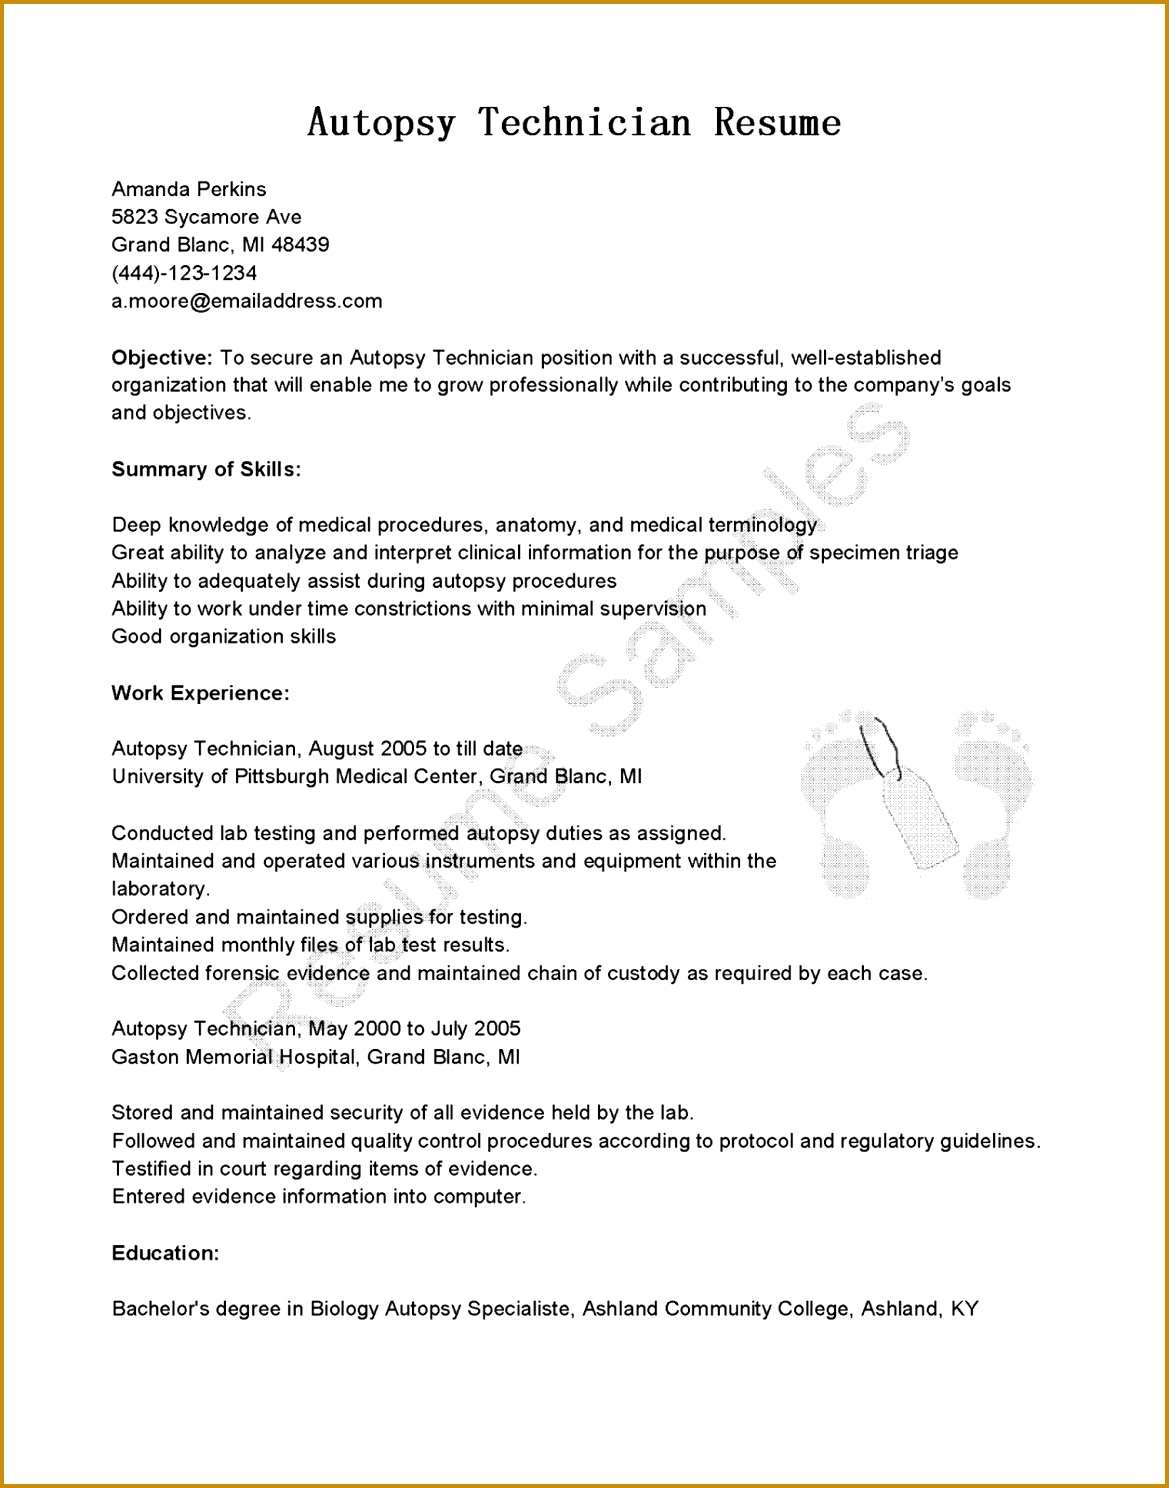 Cover Letter for Job Resume Beautiful Resume formatting Word Fresh Executive Resume Templates Word Od 14881169